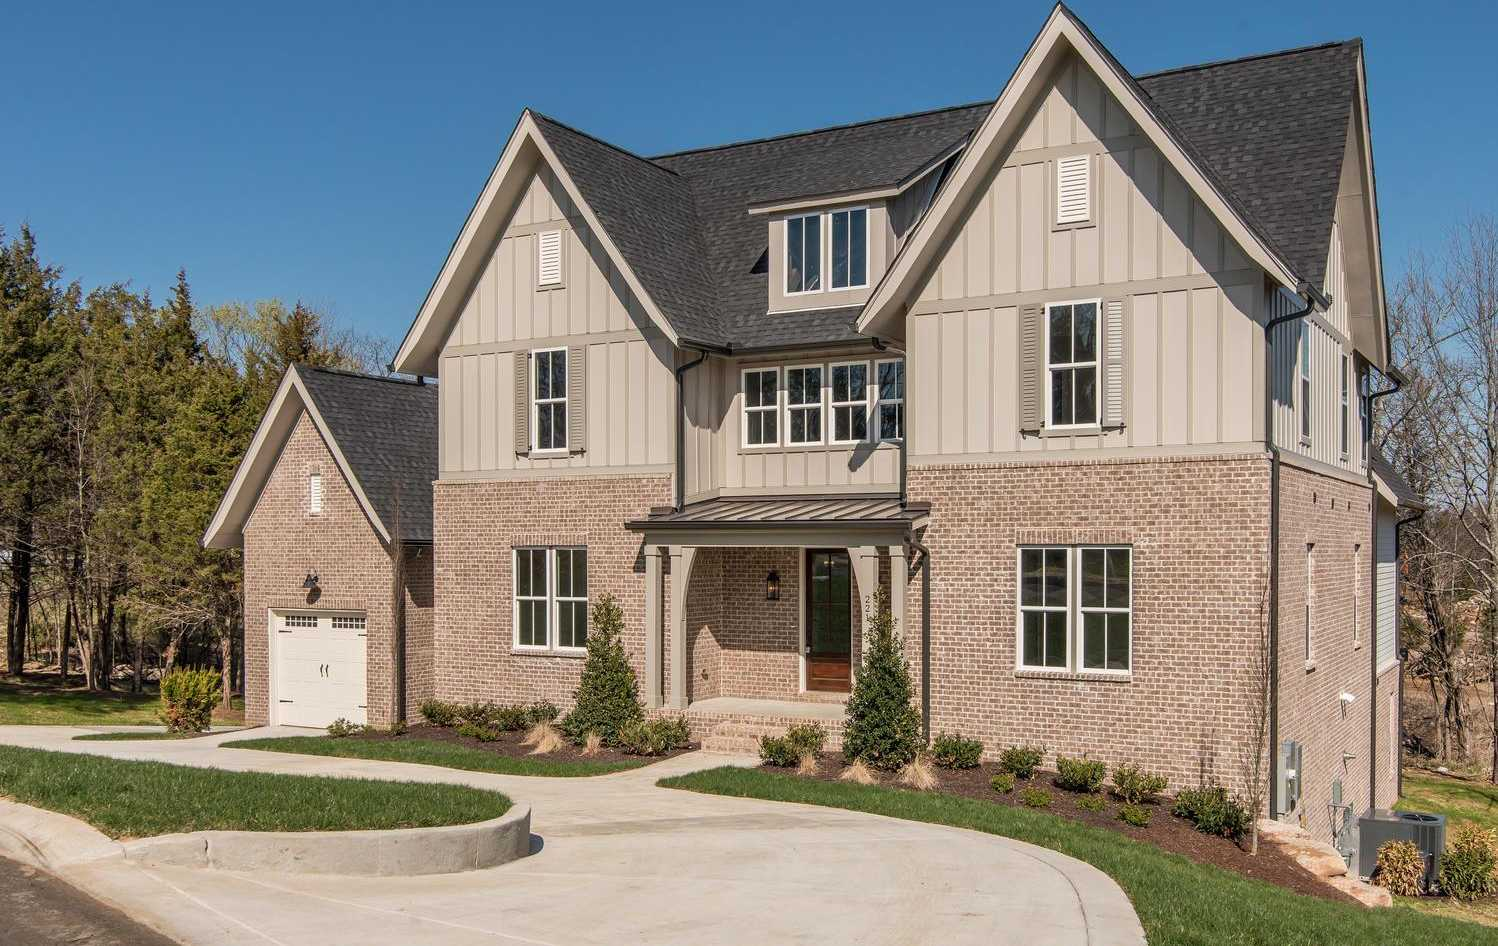 $819,900 - 5Br/5Ba -  for Sale in Gilchrist, Nolensville